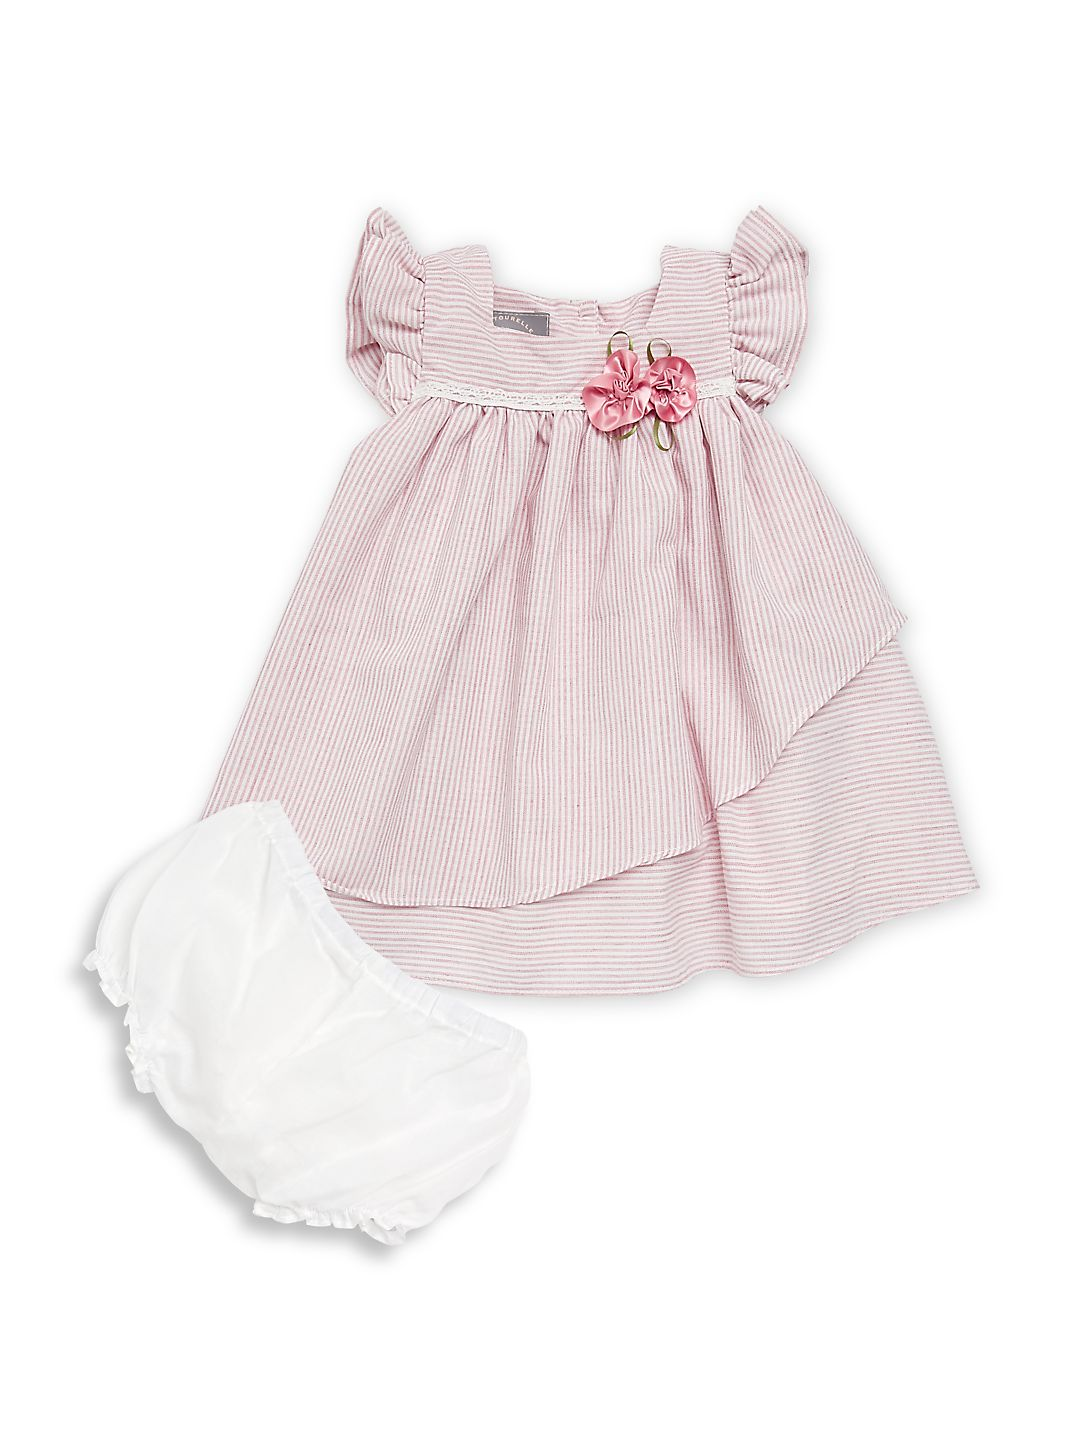 Baby Girl's Two-Piece Striped Dress and Bloomers Set